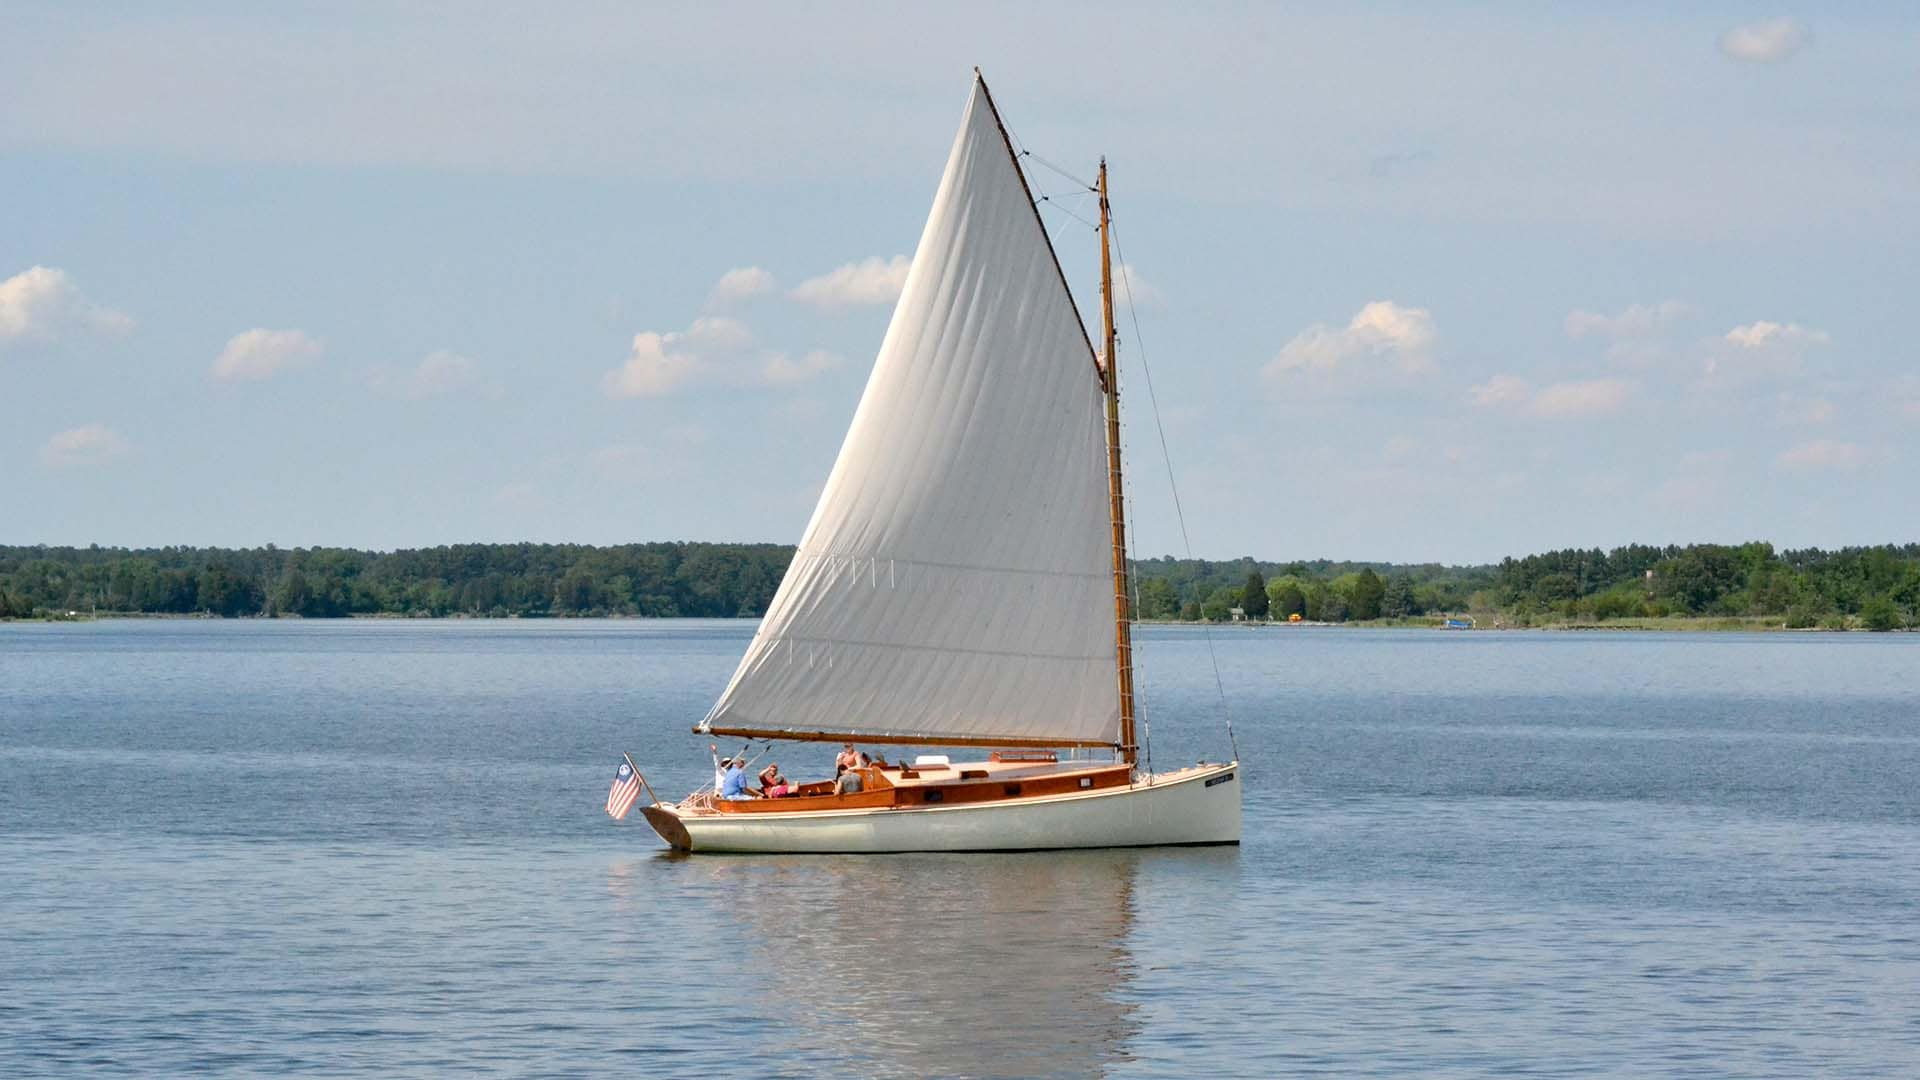 The Selina II, built in 1926, sails in Chesapeake Bay.